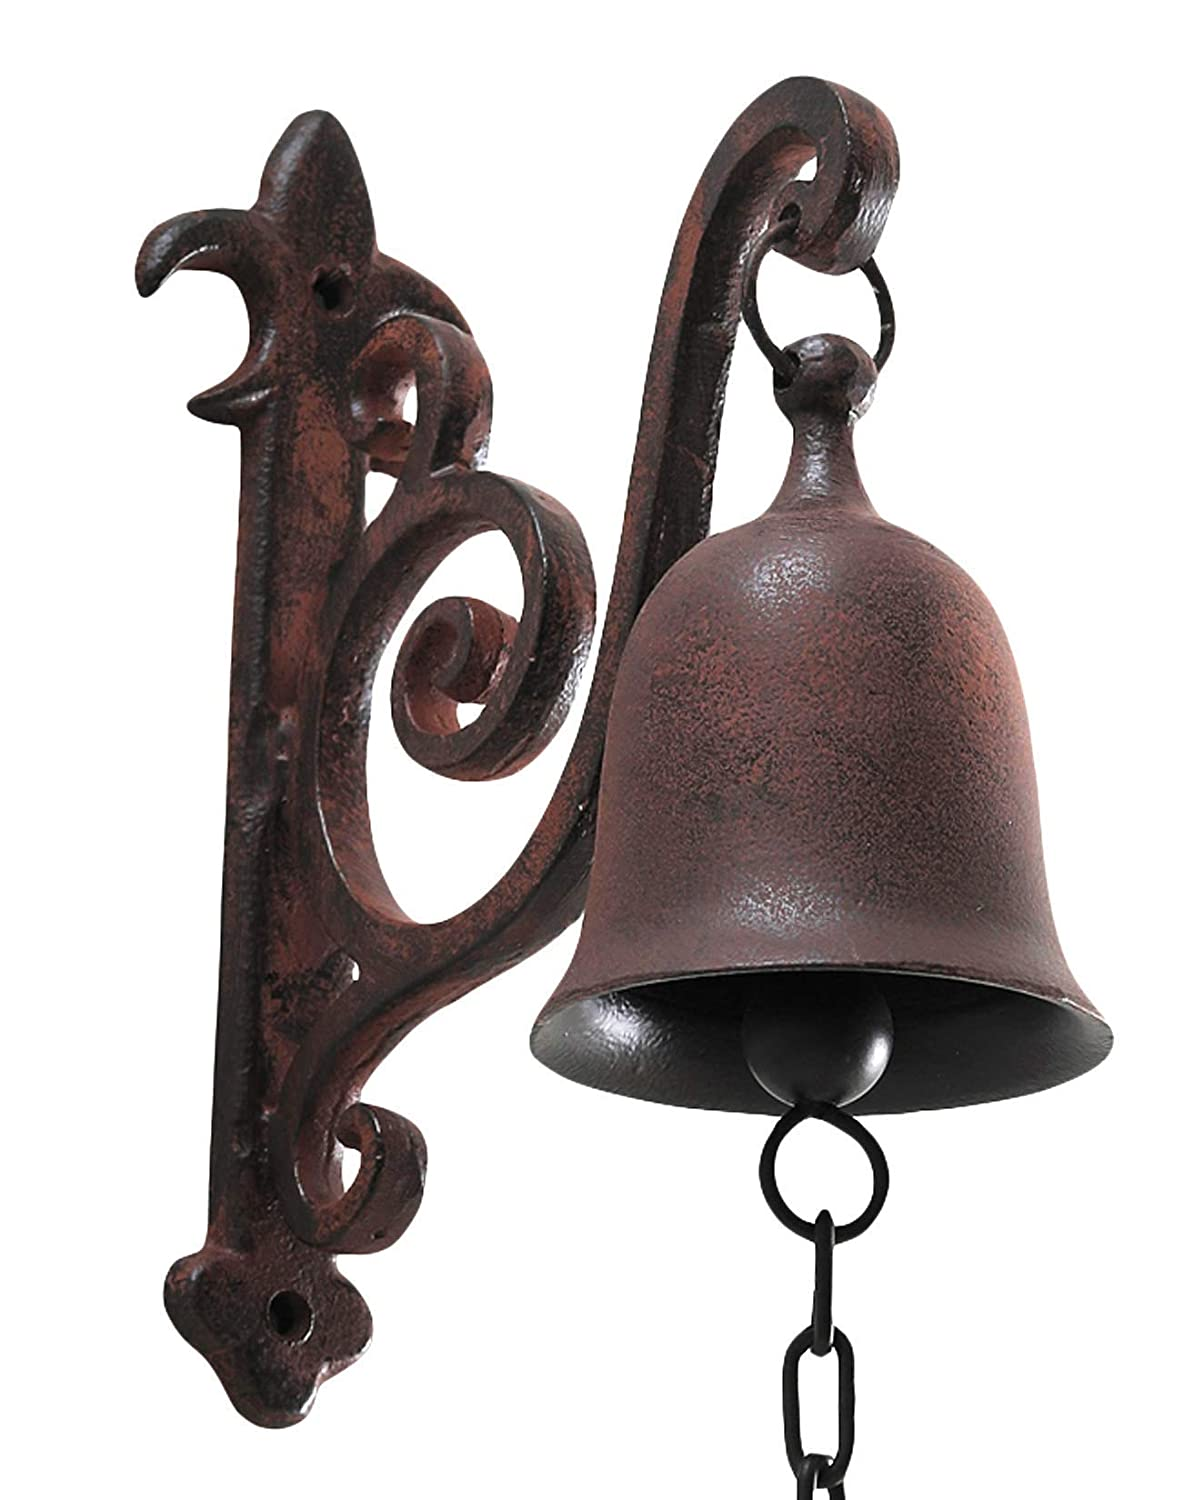 DECONOOR Cast Iron Dinner Bell with Rustic Finish